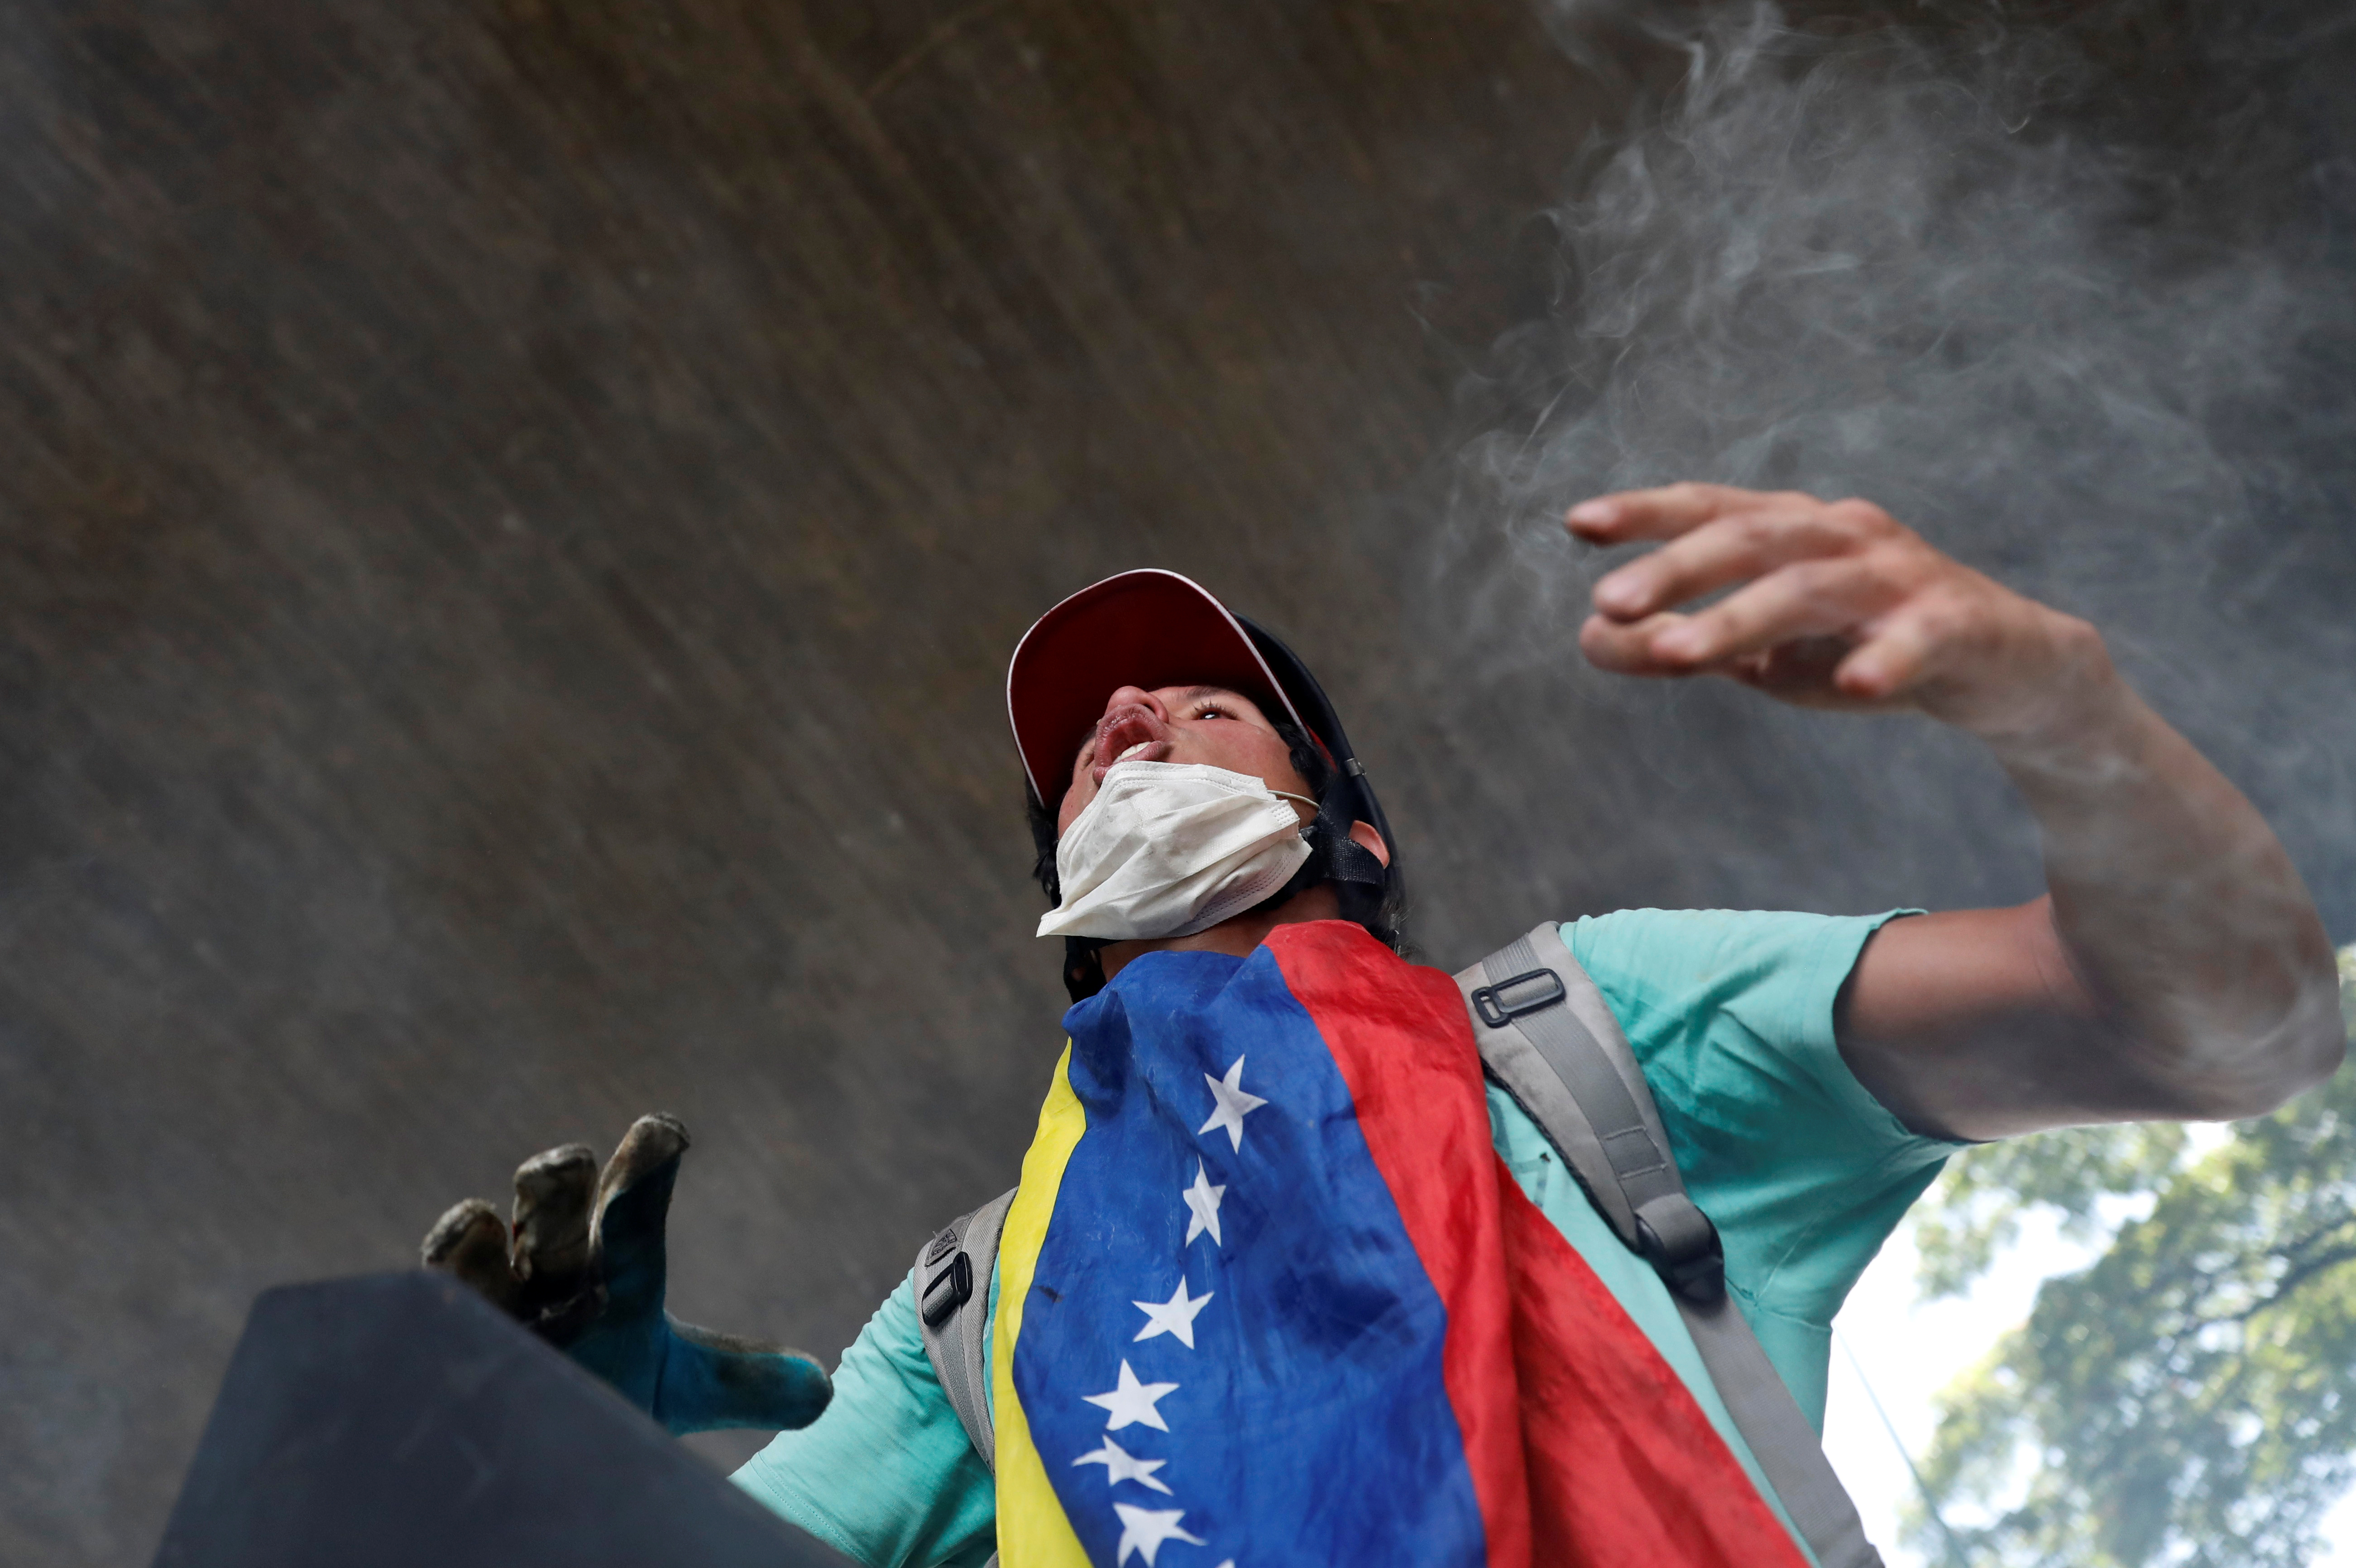 An opposition supporter clashes with riot police while rallying against President Nicolas Maduro in Caracas, Venezuela, May 4, 2017.